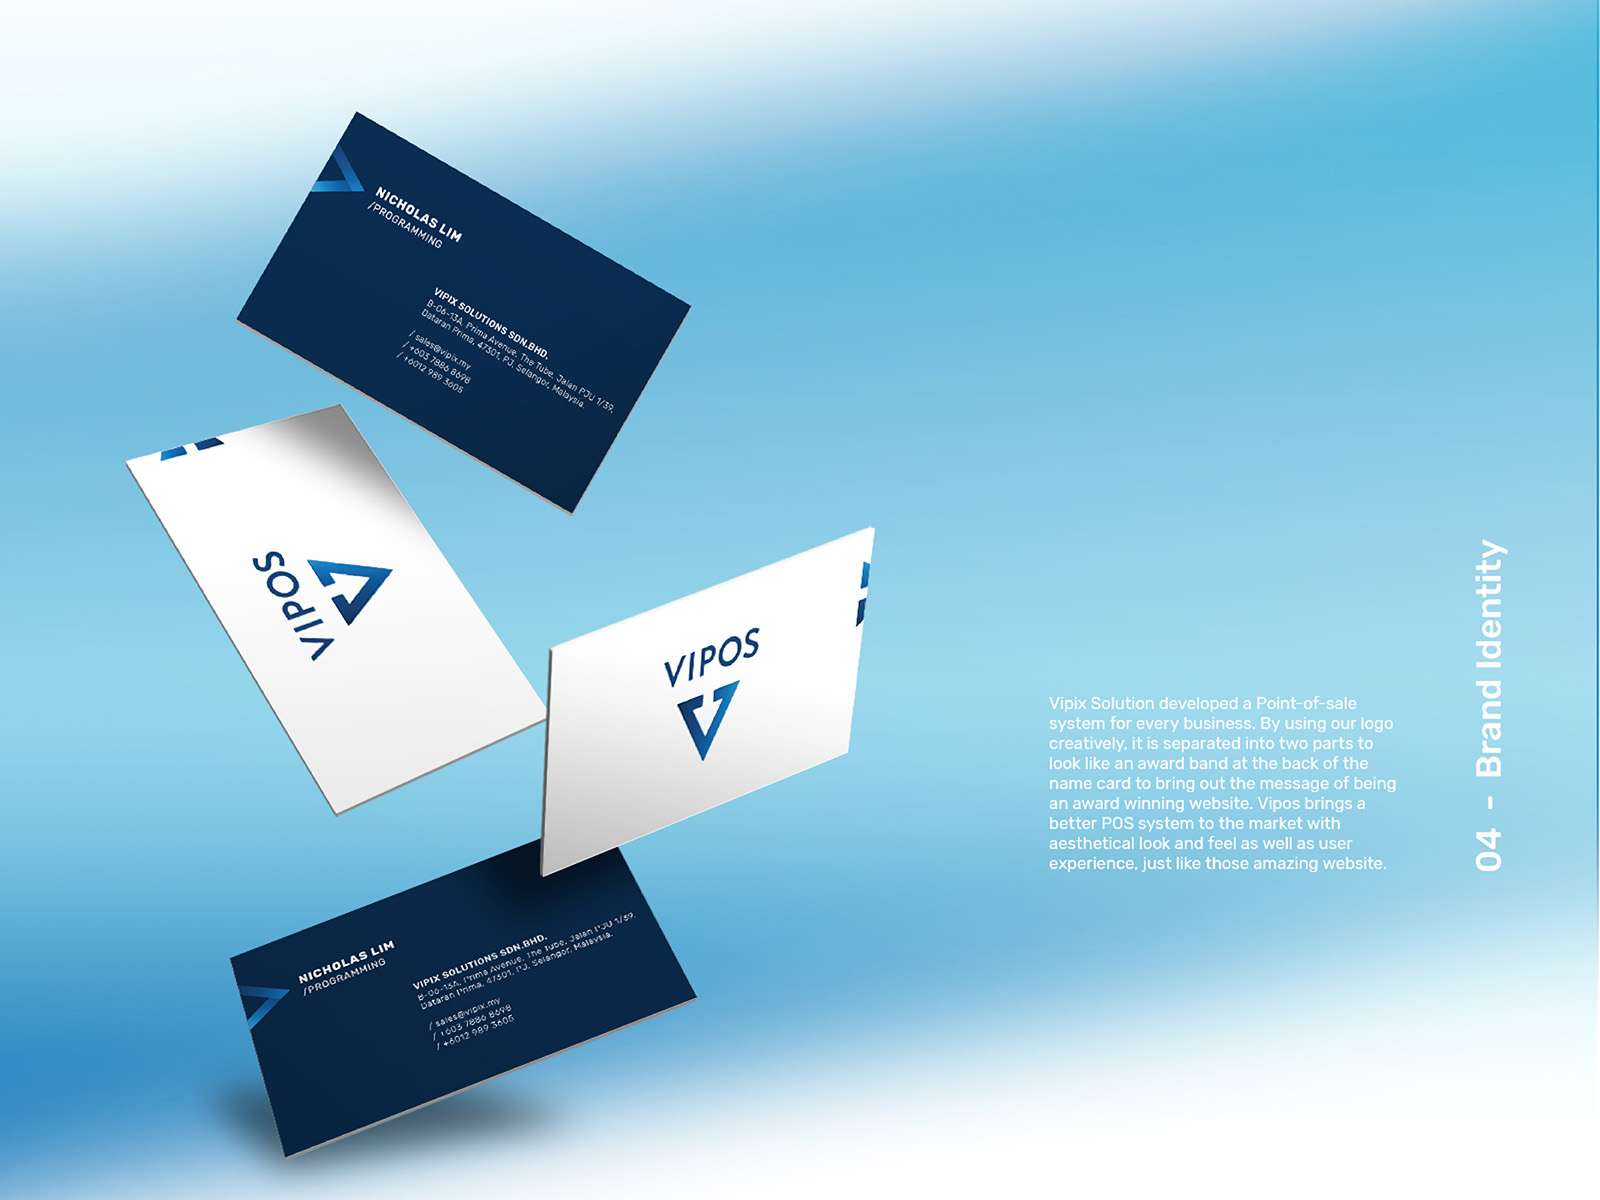 Vipos POS system branding development and showcasing name card design and breaking off the V on the top left of the name card to form a banner like how website are awarded winners with a banner